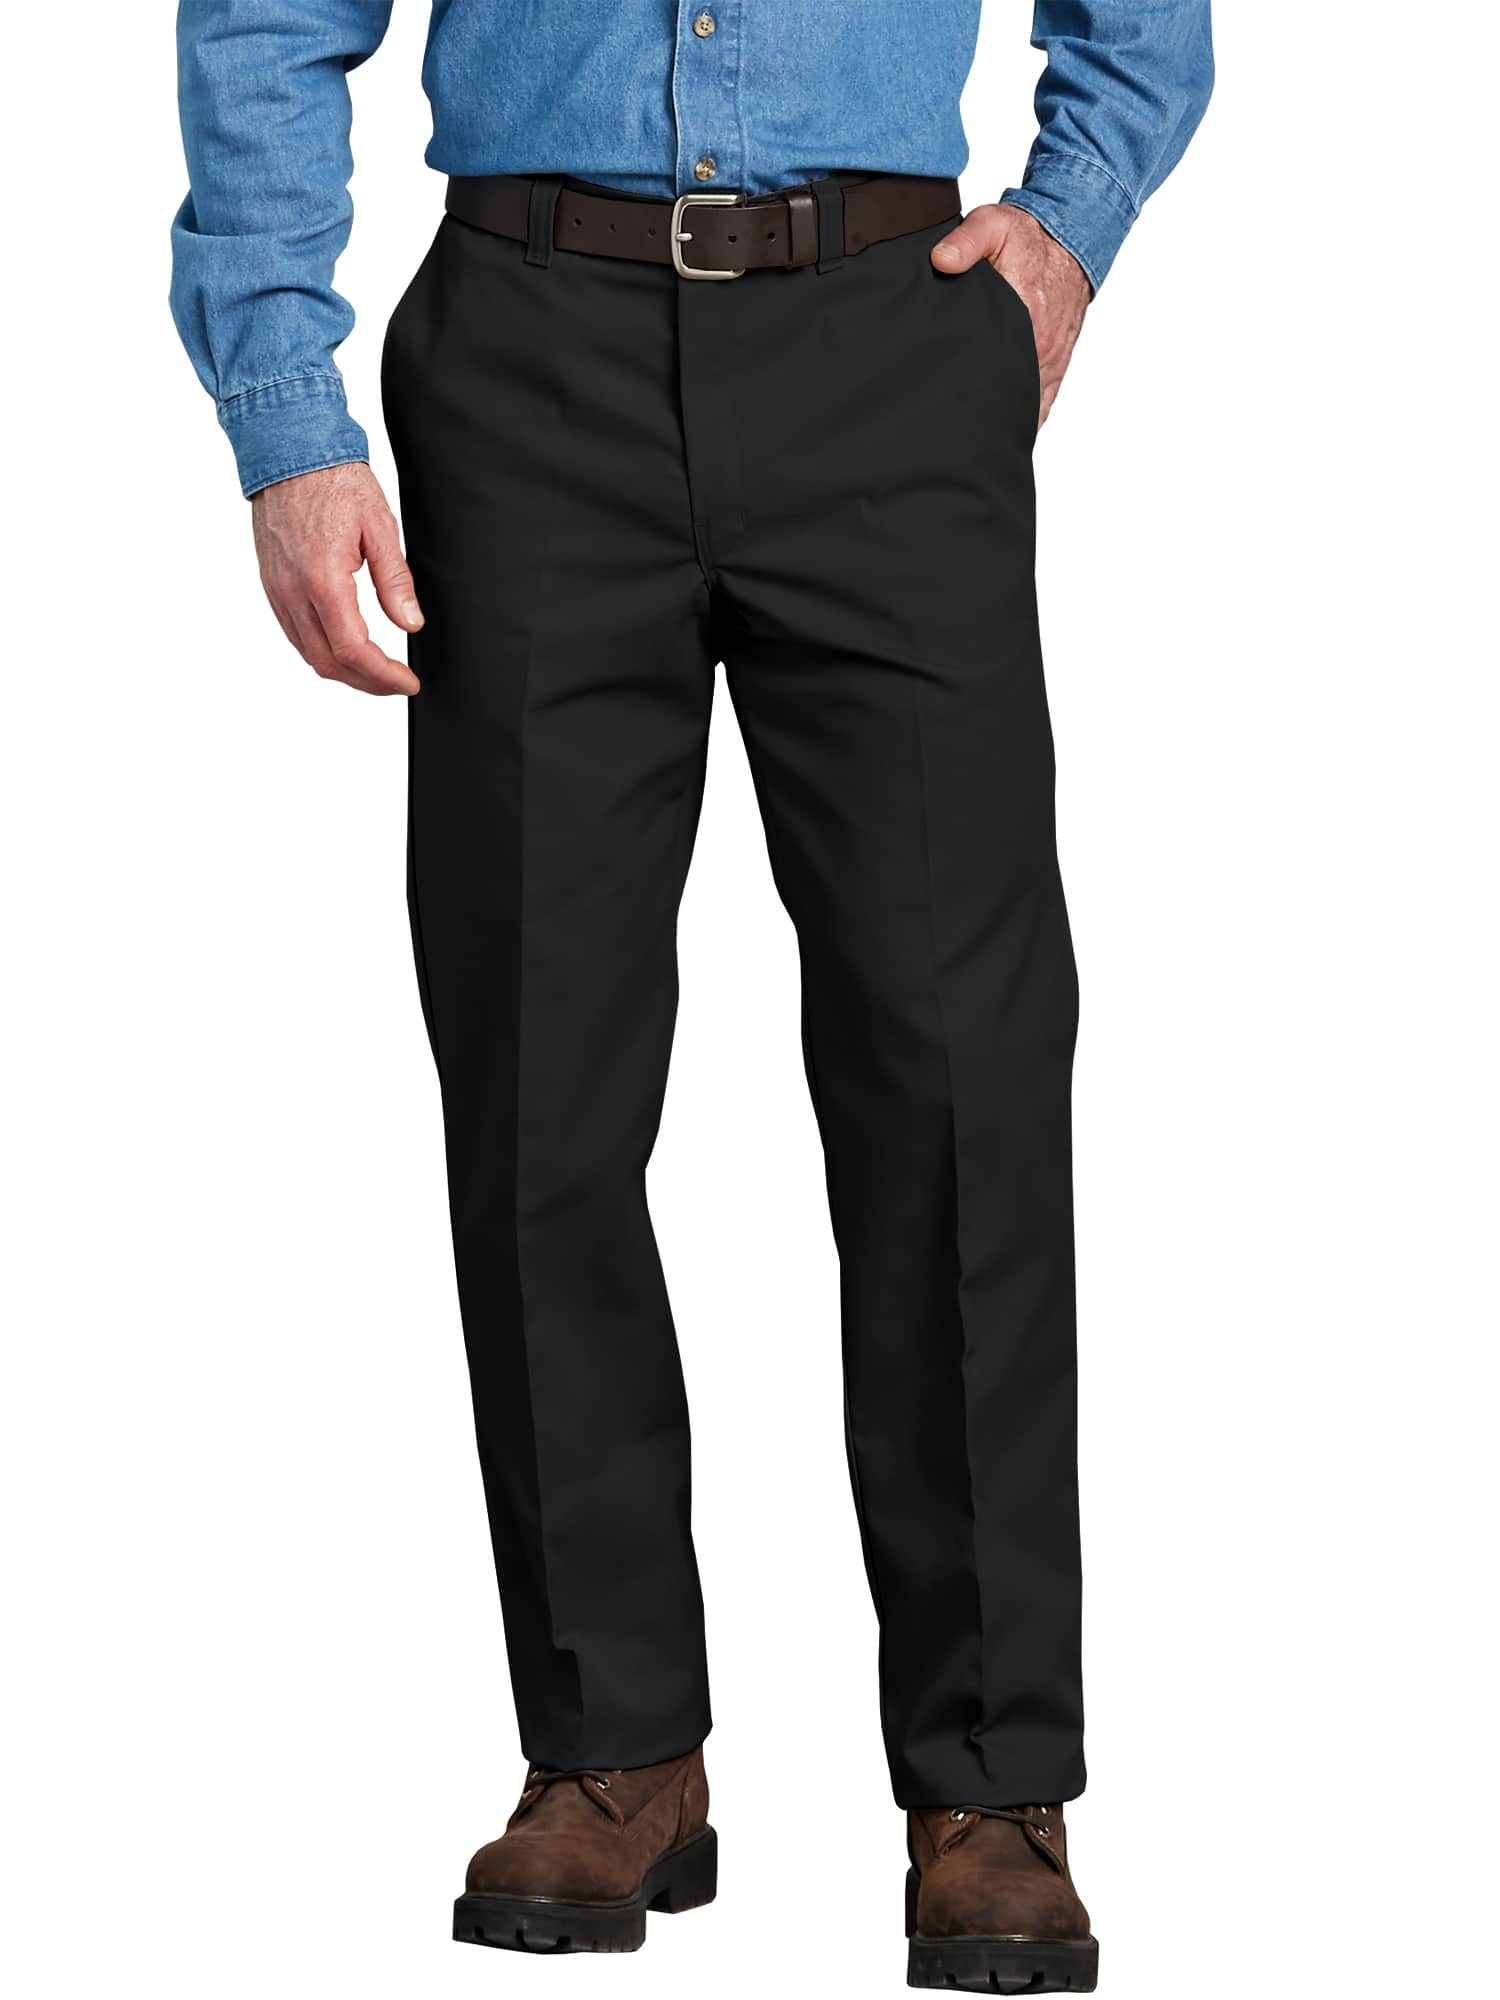 Dickies Men's Flat-Front Work Pants (Black, Dark Navy or Desert Sand)